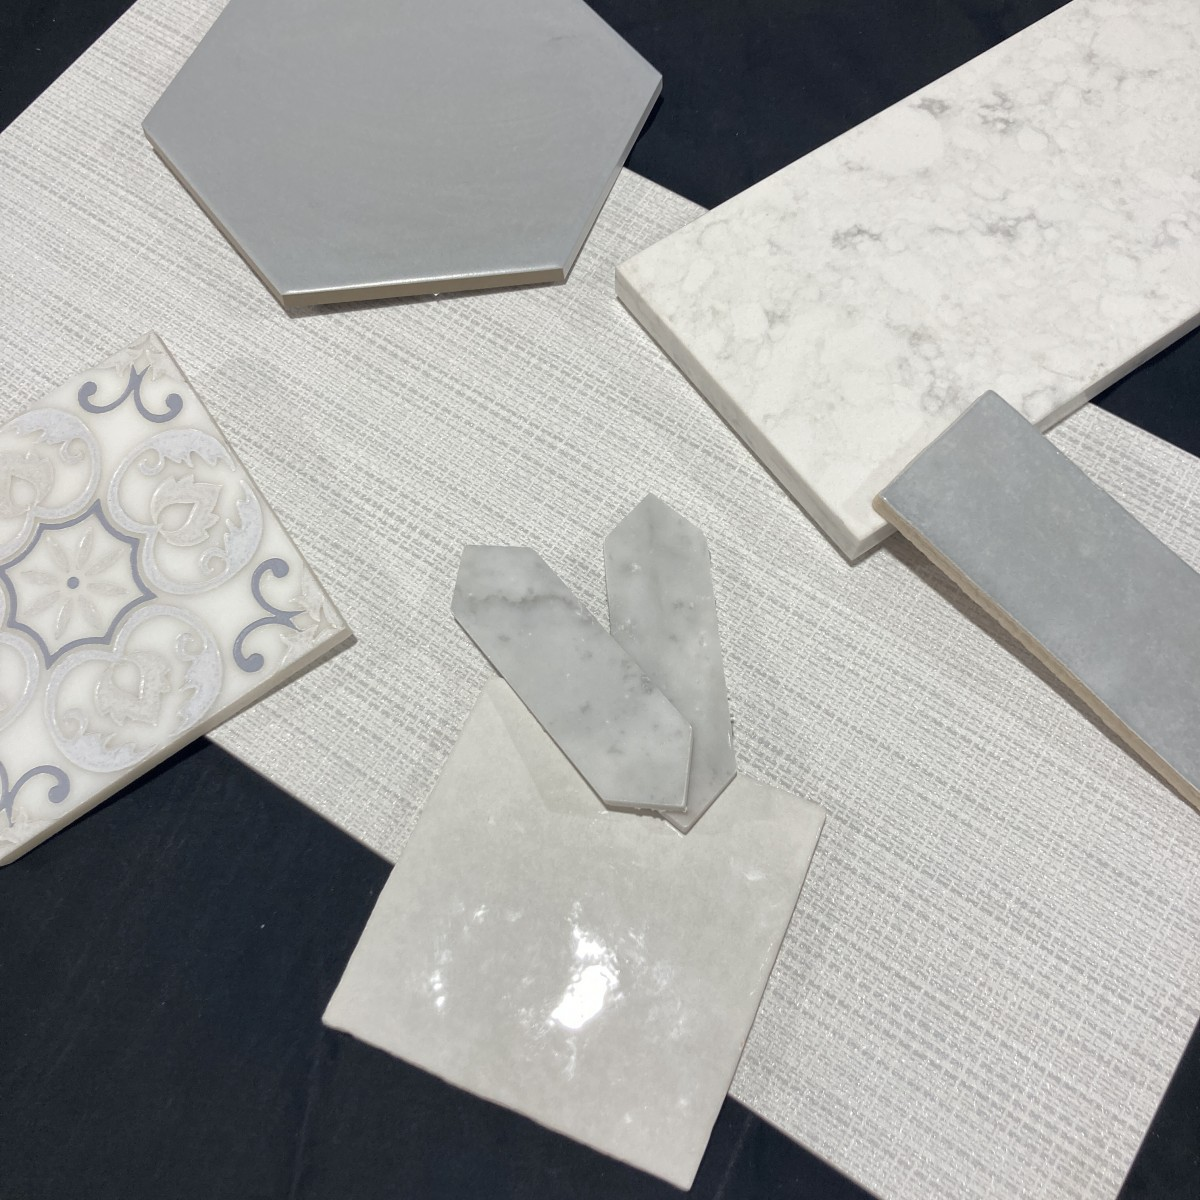 A mix of white and gray ceramic, porcelain, and glass tiles.